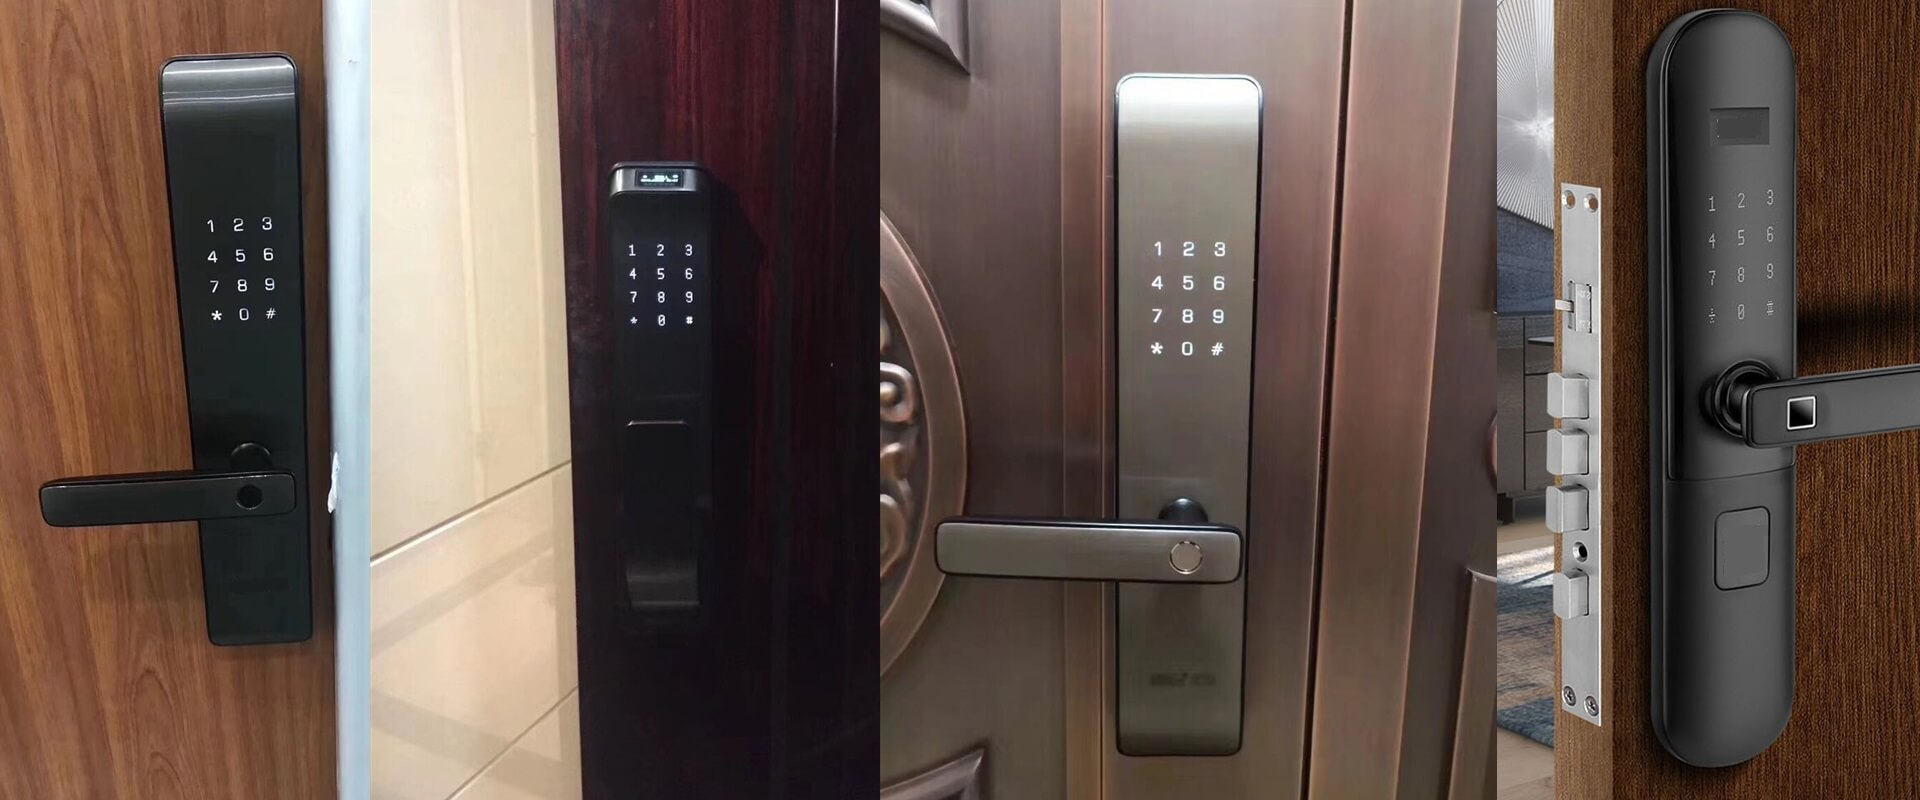 Best fingerprint door locks